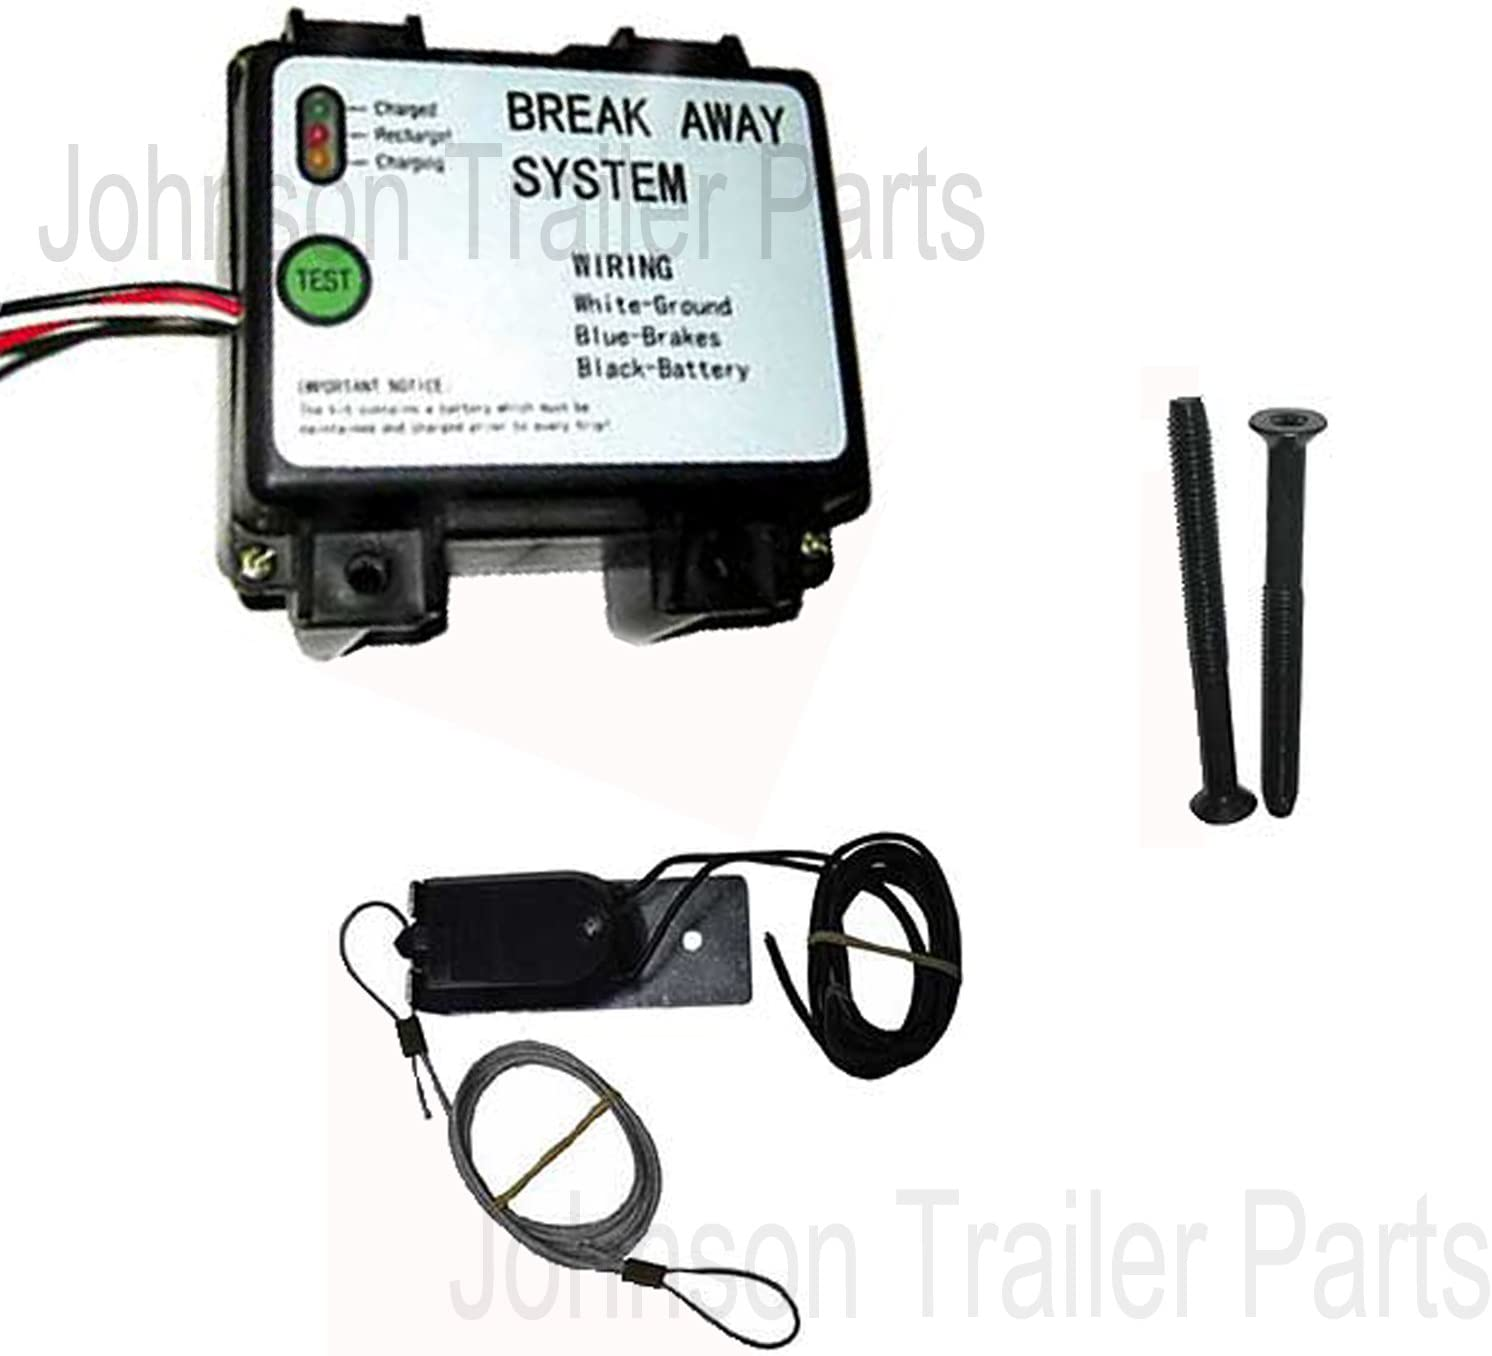 Hopkins 20019 Trailer Break Away Kit with Battery Charger and 44 Switch